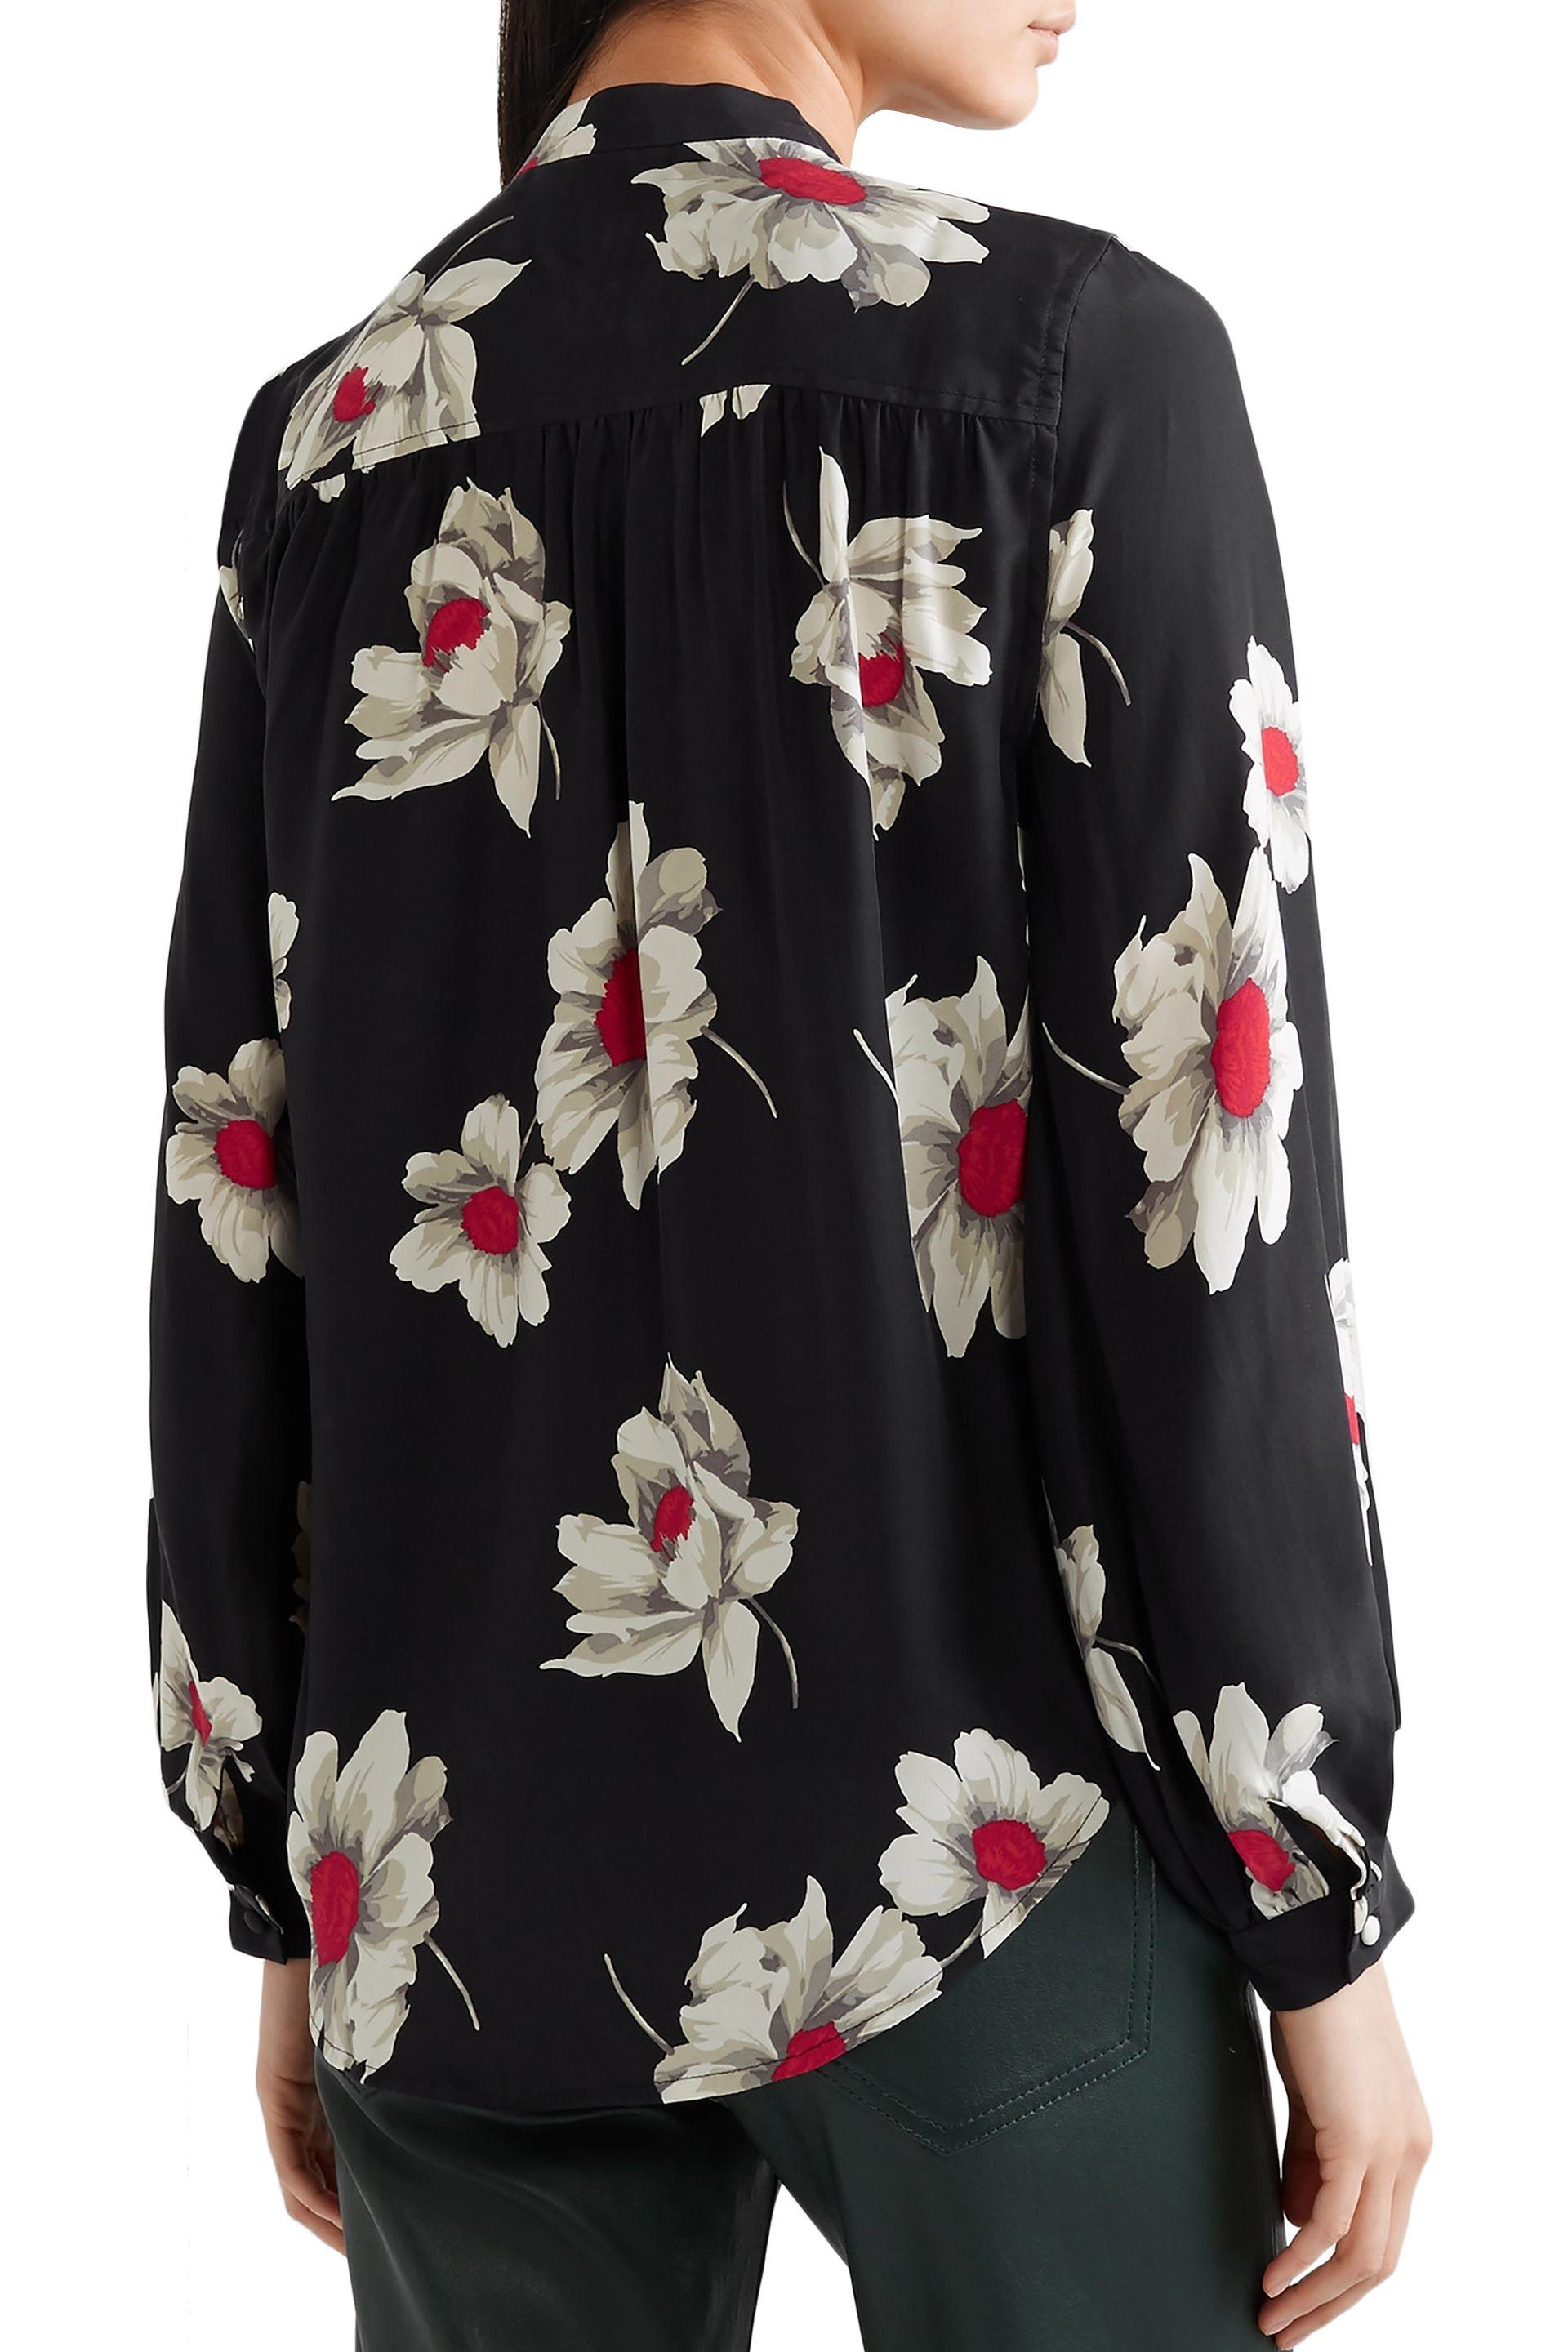 5361d1a7271823 Equipment Cornelia Floral-print Washed-silk Shirt Black in Black - Save 43%  - Lyst